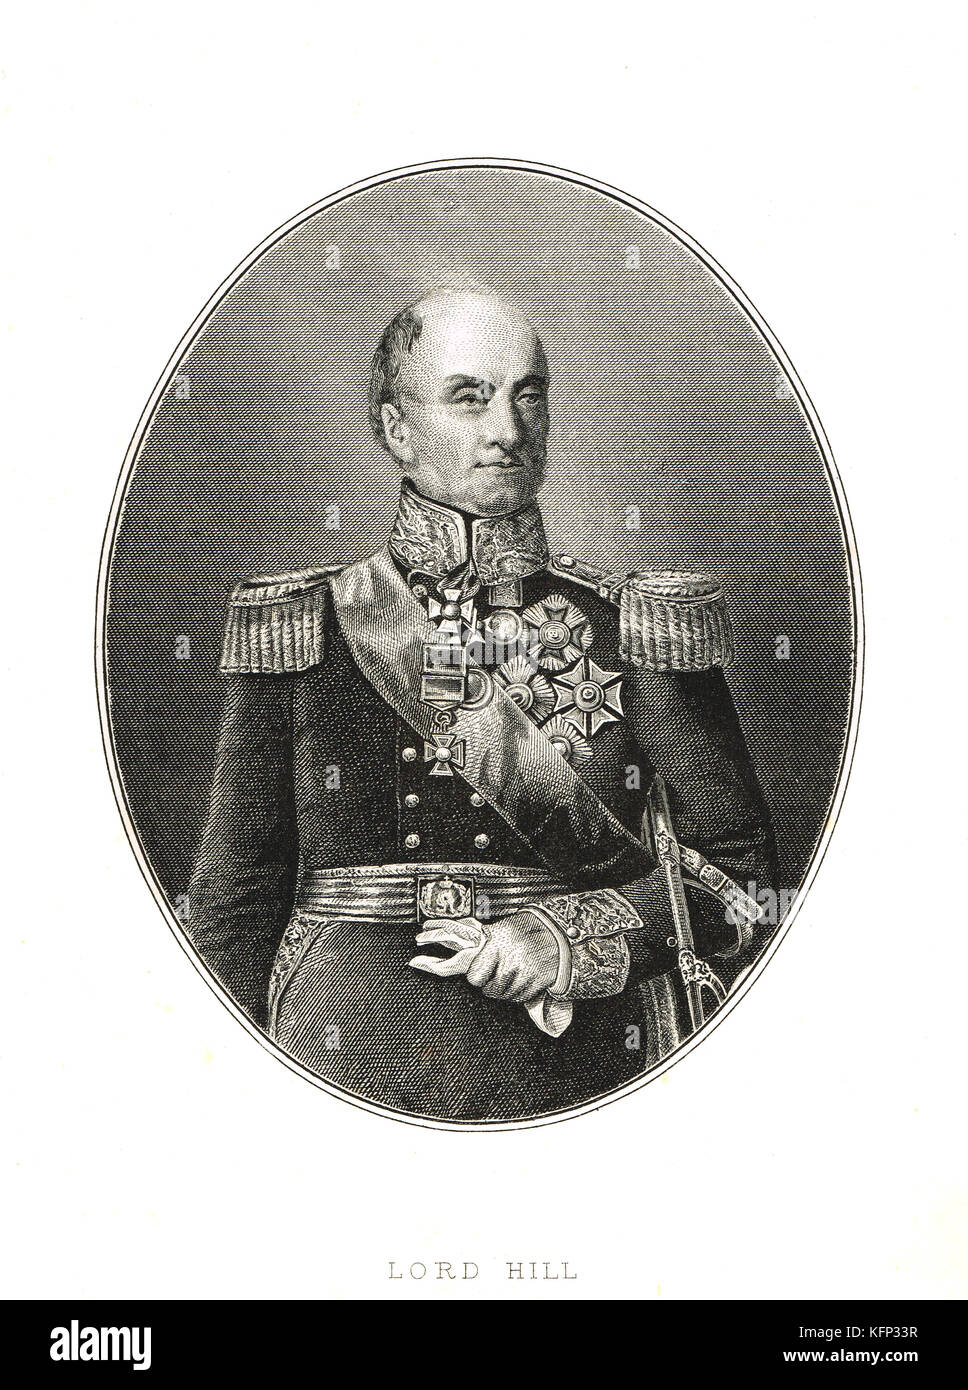 General Rowland Hill, 1st Viscount Hill, 1772–1842, Commander-in-Chief of the British Army in 1828 - Stock Image